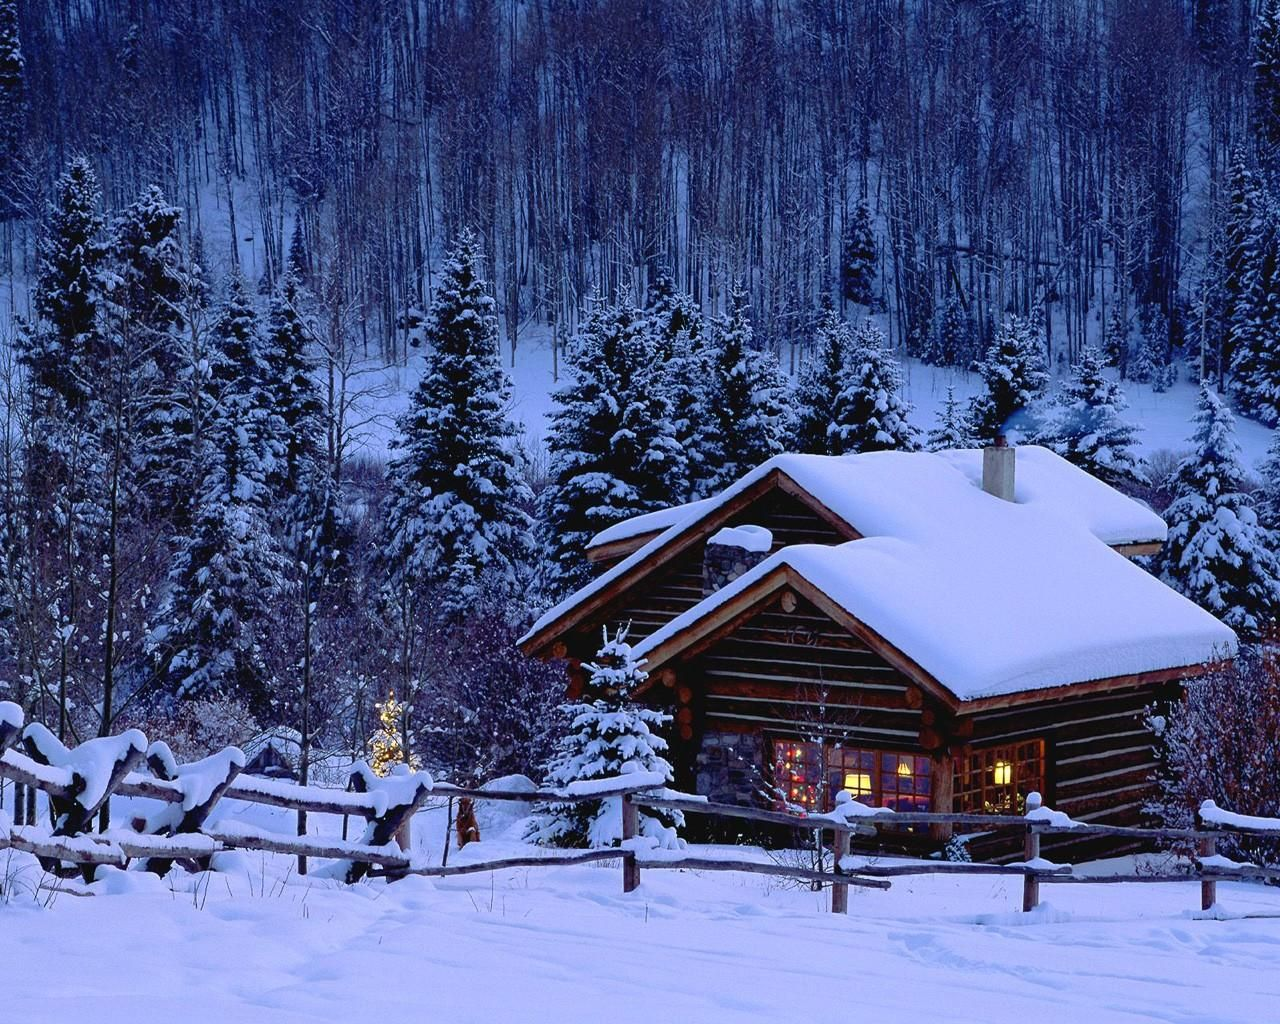 winter in new england | New England snowfall in fantasy land.